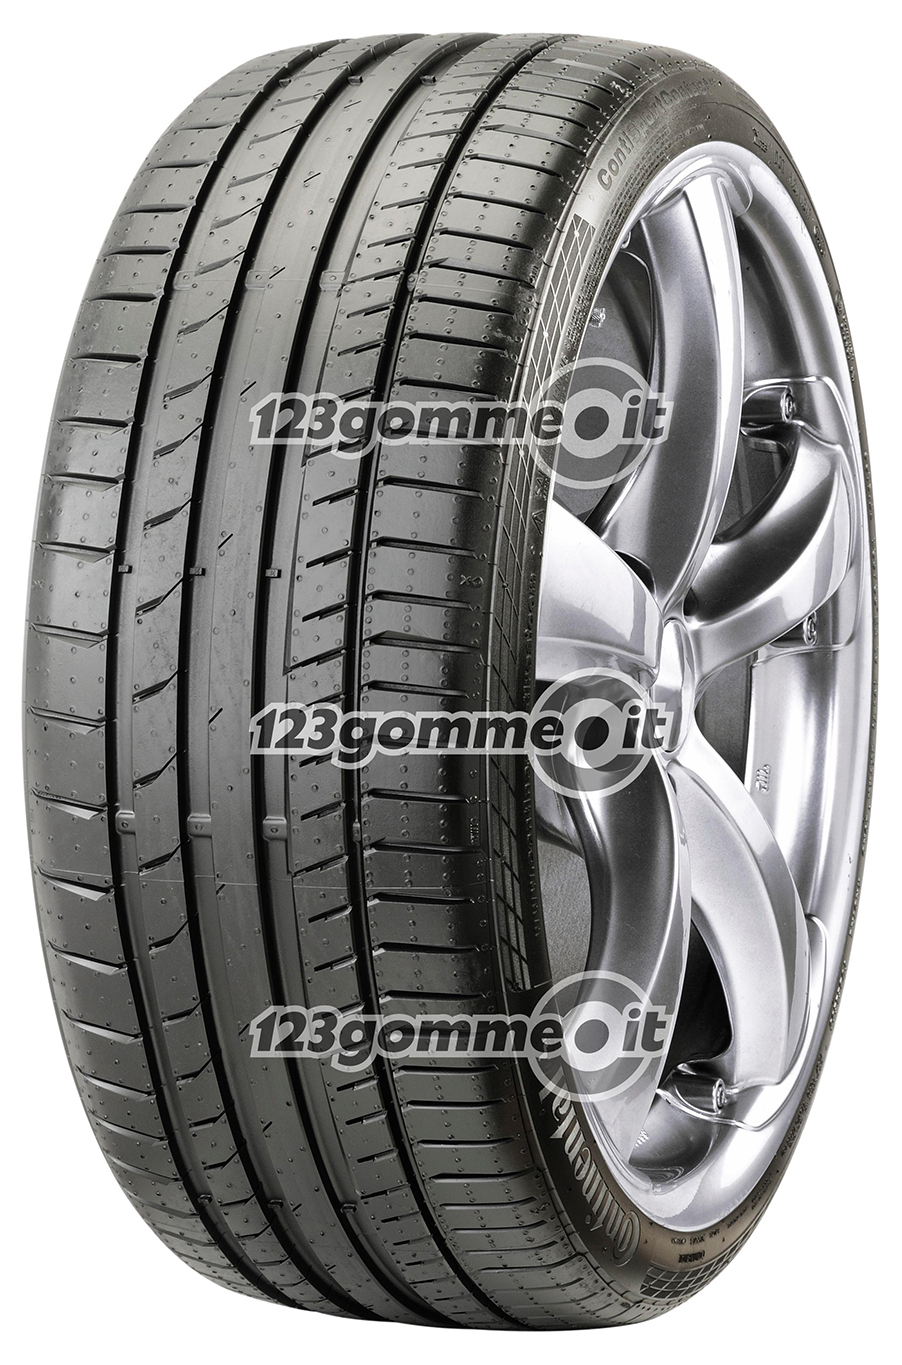 255/35 R19 96Y SportContact 5 P XL MO FR  SportContact 5 P XL MO FR